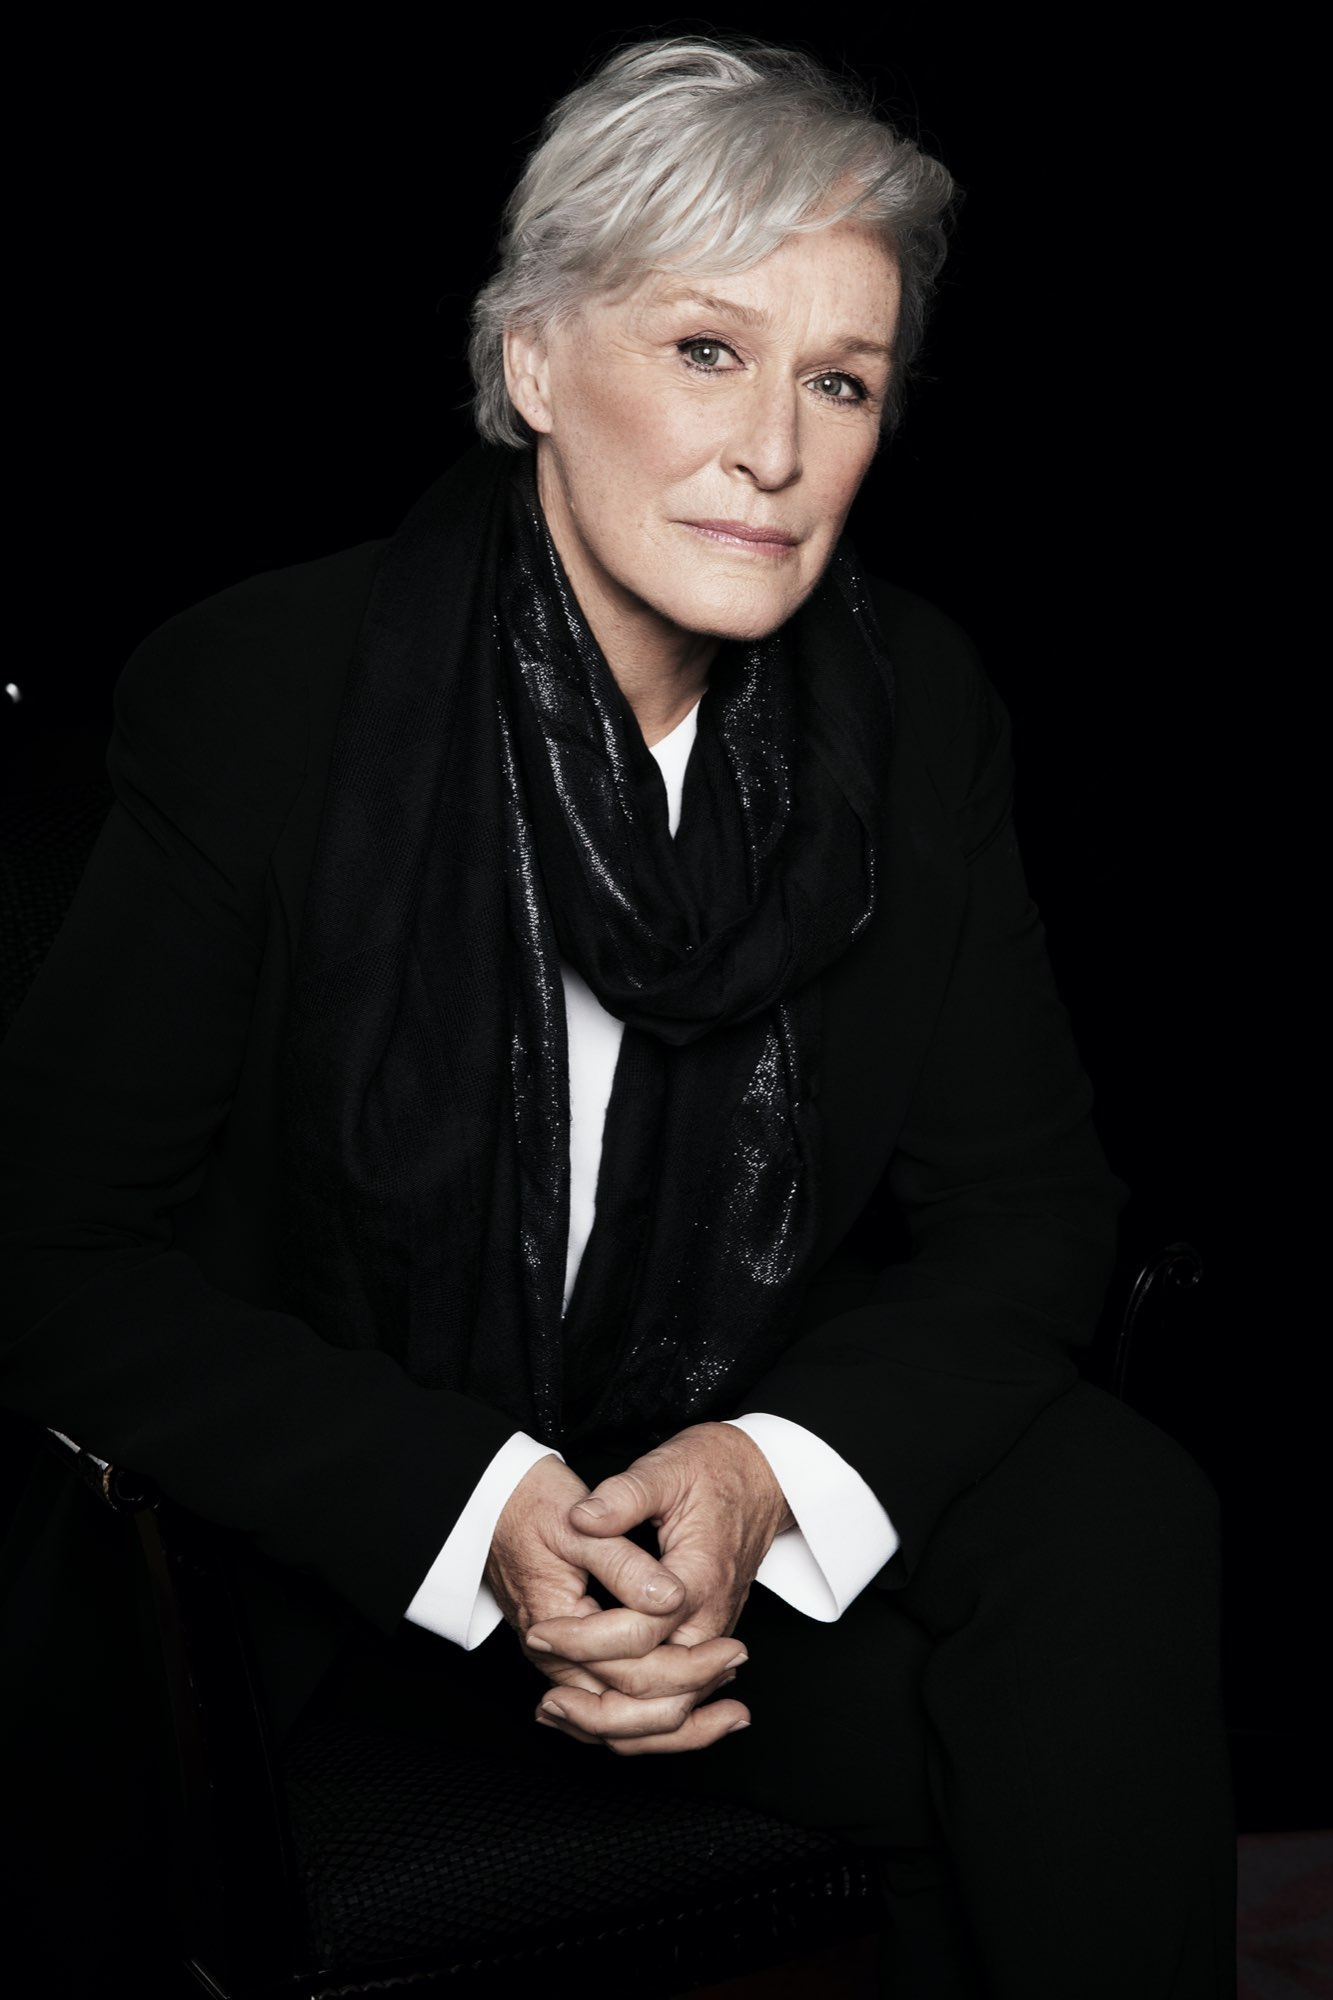 Hair, Nail, Make-up und Fashion styling portfolio / lo--c-hauck - glenn-close-photo-by-sabine-liewald-at-zff-ID578-1.jpeg?v=1589287408